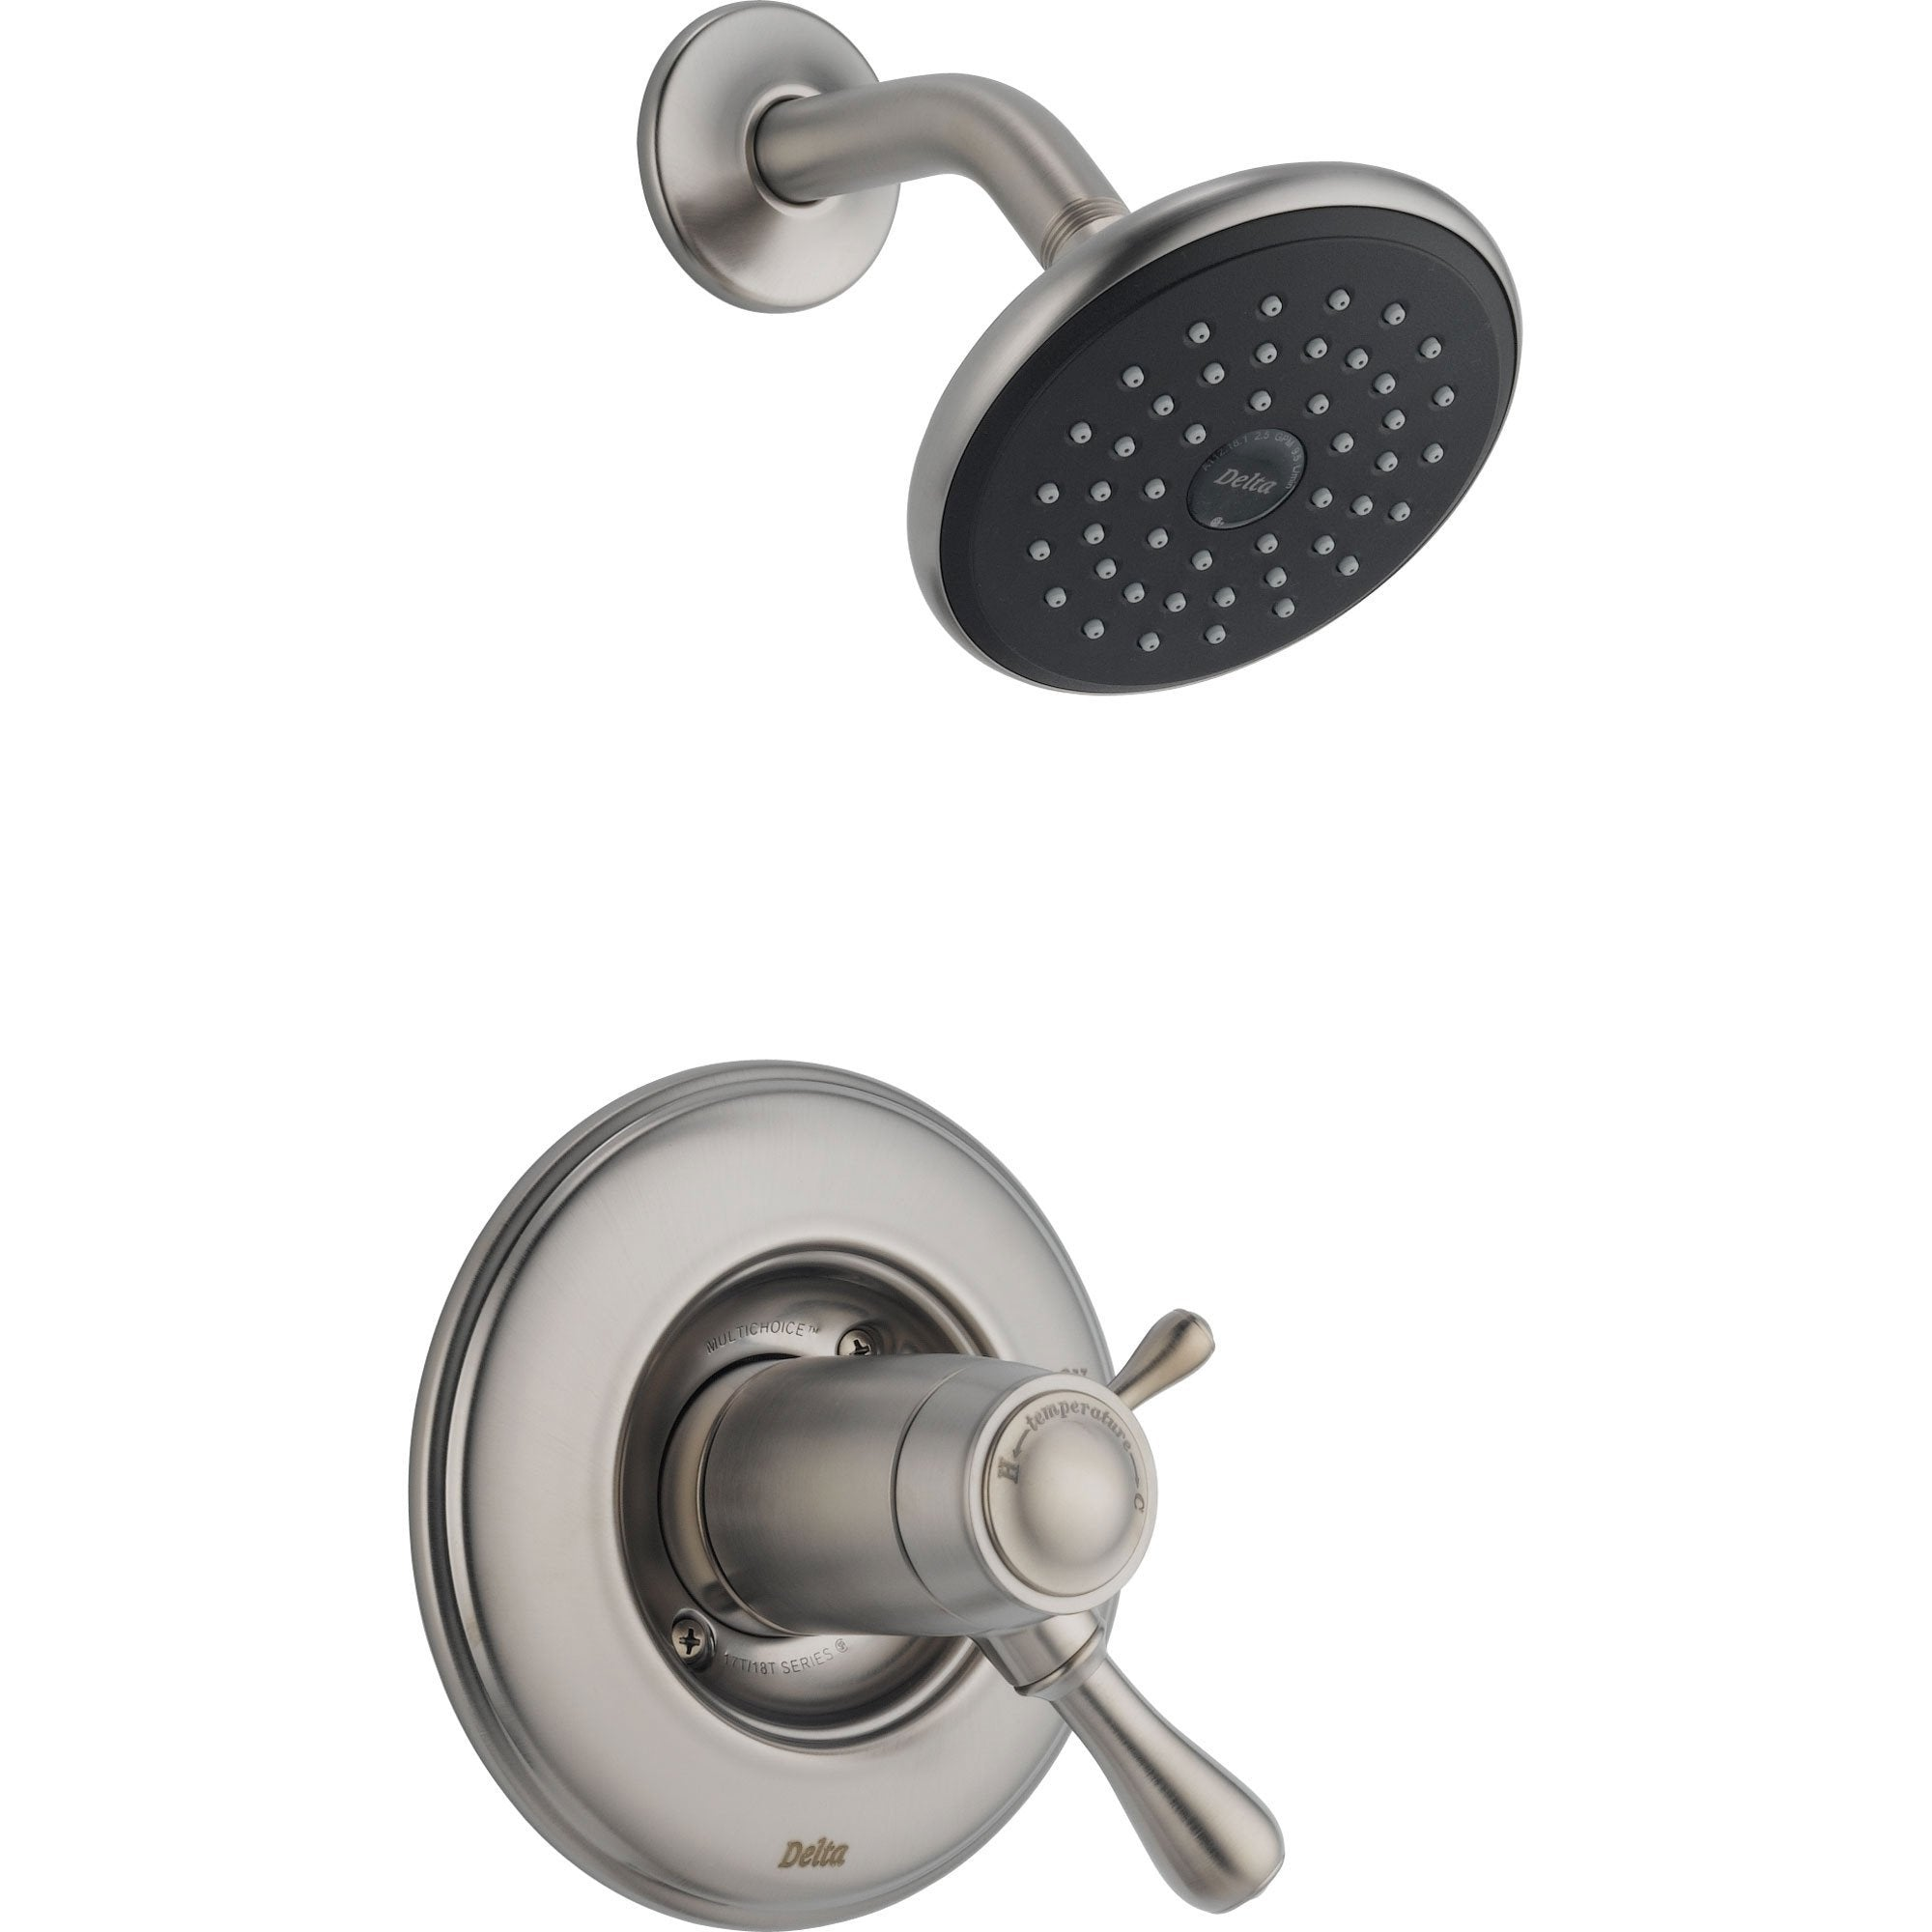 Delta Leland Stainless Steel Finish Thermostatic Shower Faucet with Valve D816V